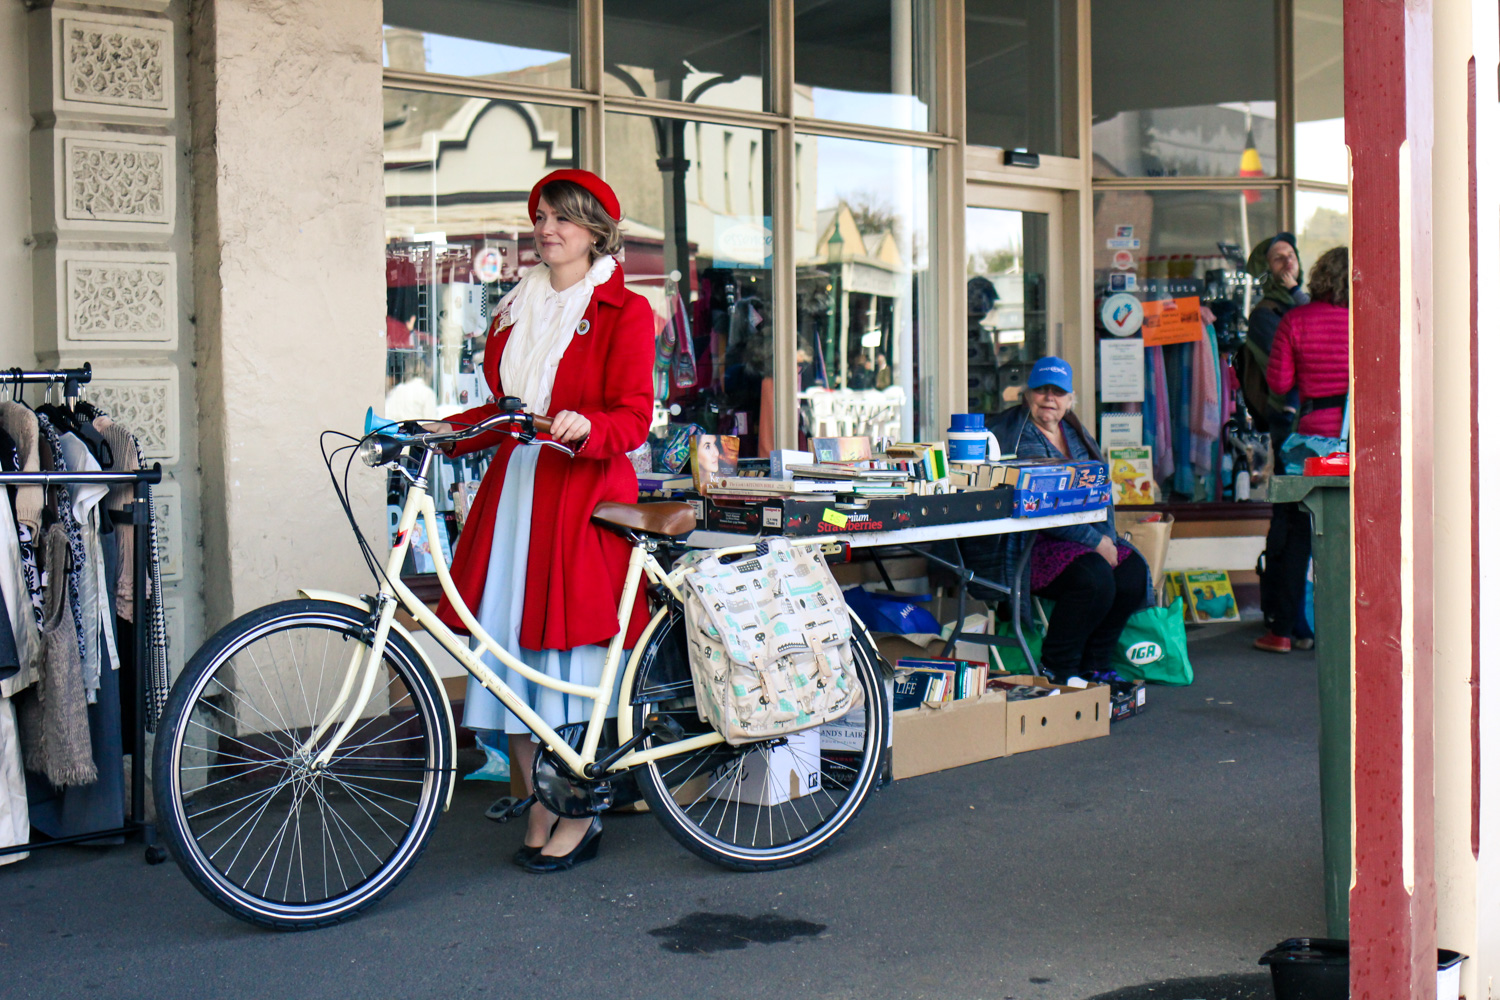 @findingfemme wears red Review Australia coat at Clunes Booktown Festival 2016 on a Lekker Bike.